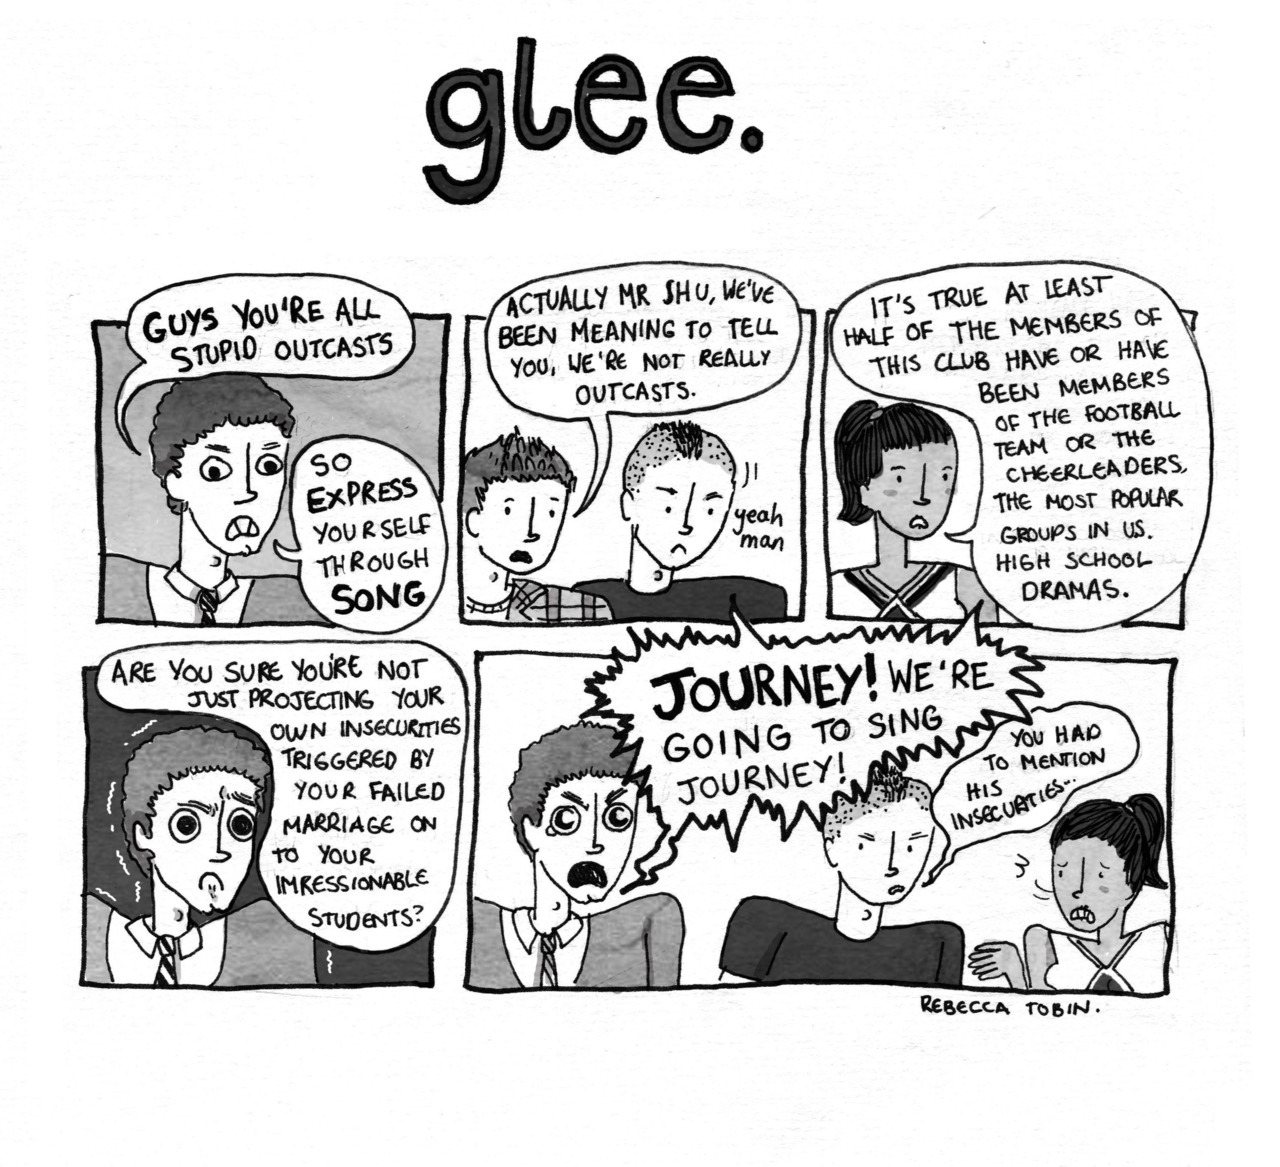 I like Glee, but I was never really sold by the idea that they were all somehow rejects.